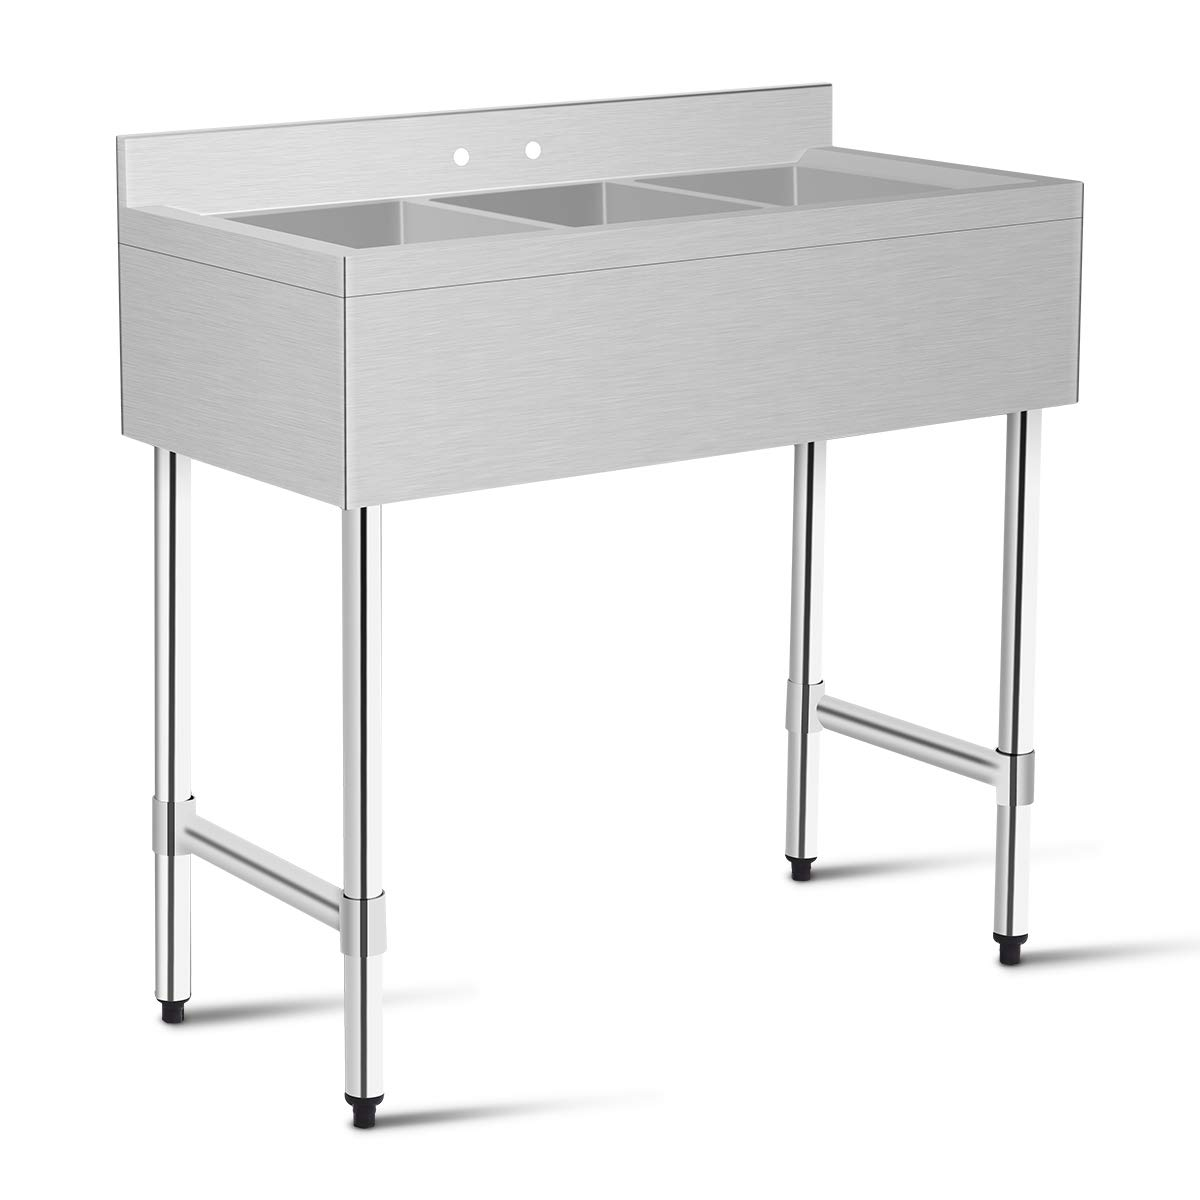 Giantex 3 Compartment Sink Kitchen Prep & Utility Sink Heavy Duty Stainless Steel Commercial